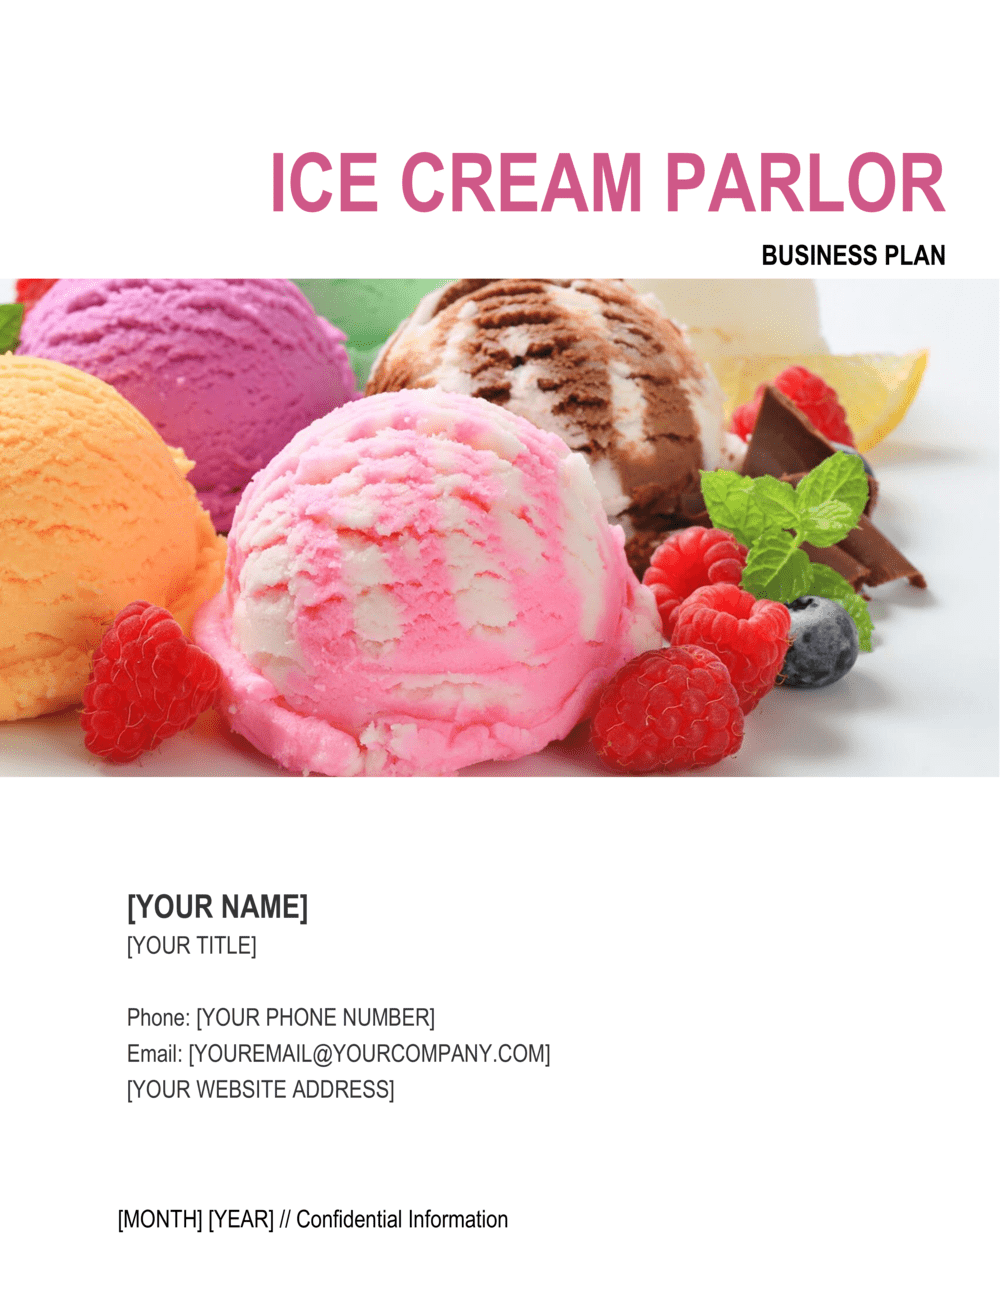 Business-in-a-Box's Ice Cream Parlor Business Plan Template